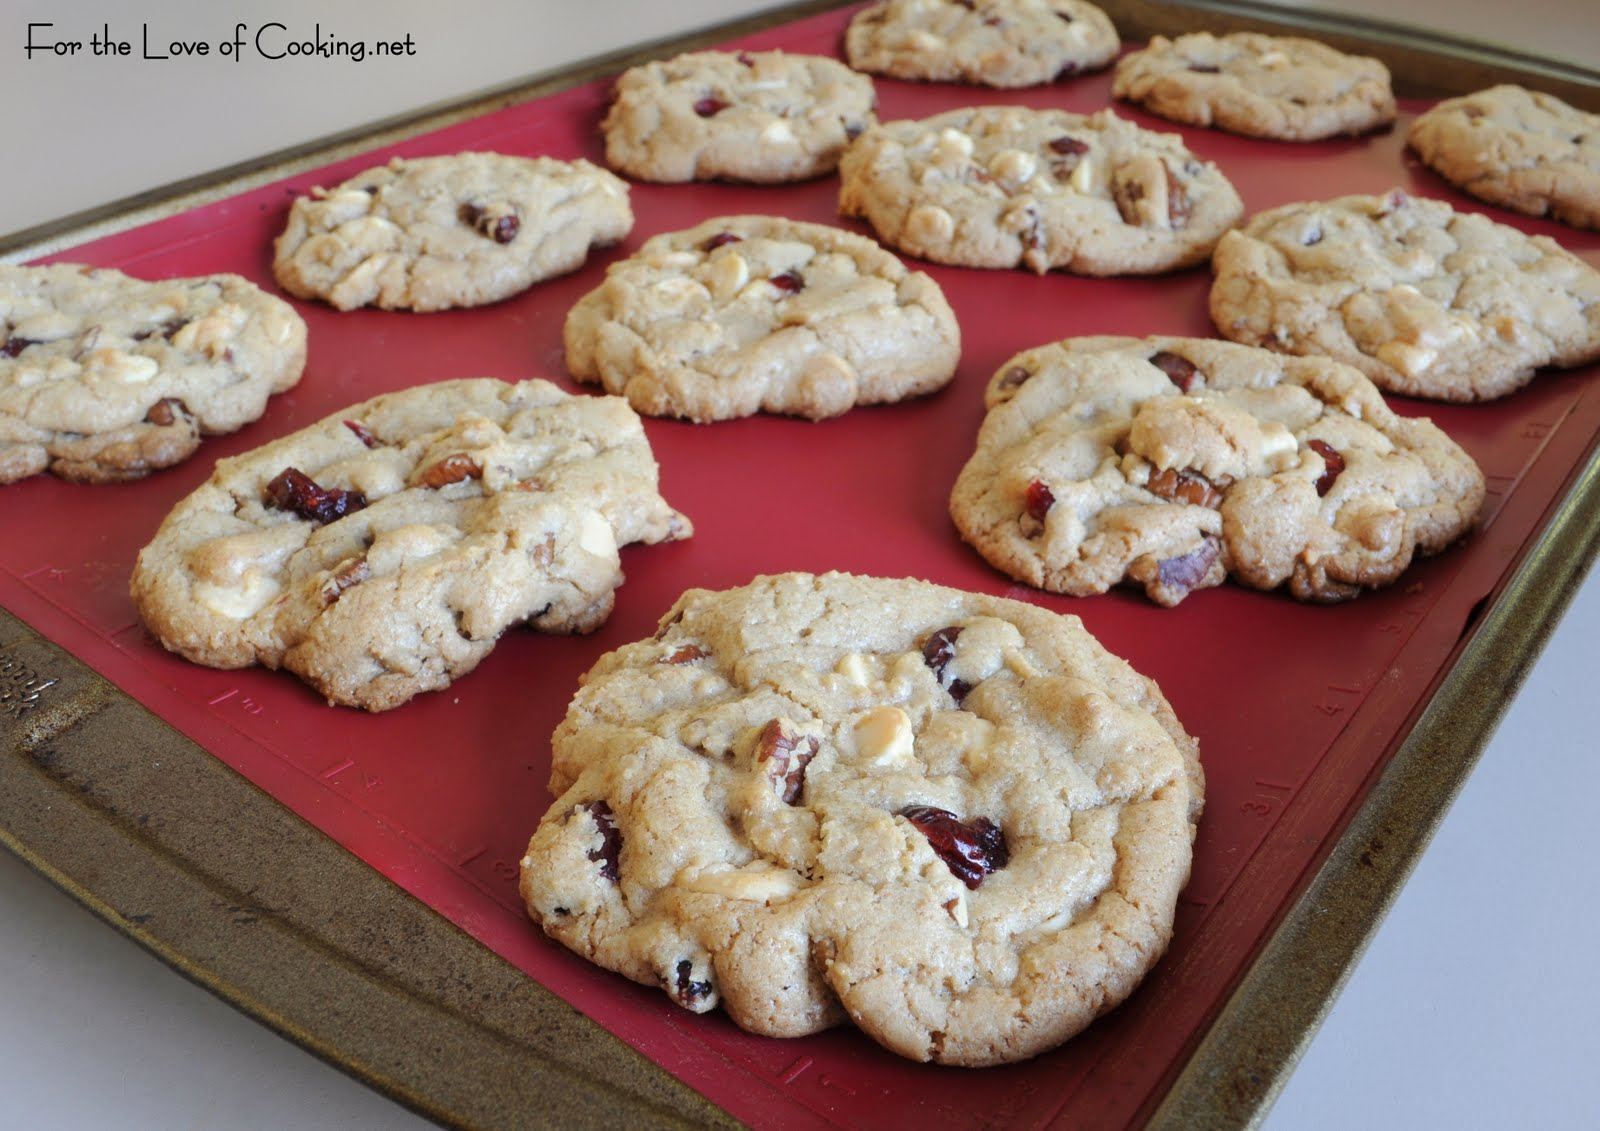 White Chocolate, Pecan, and Craisin Cookies | For the Love of Cooking